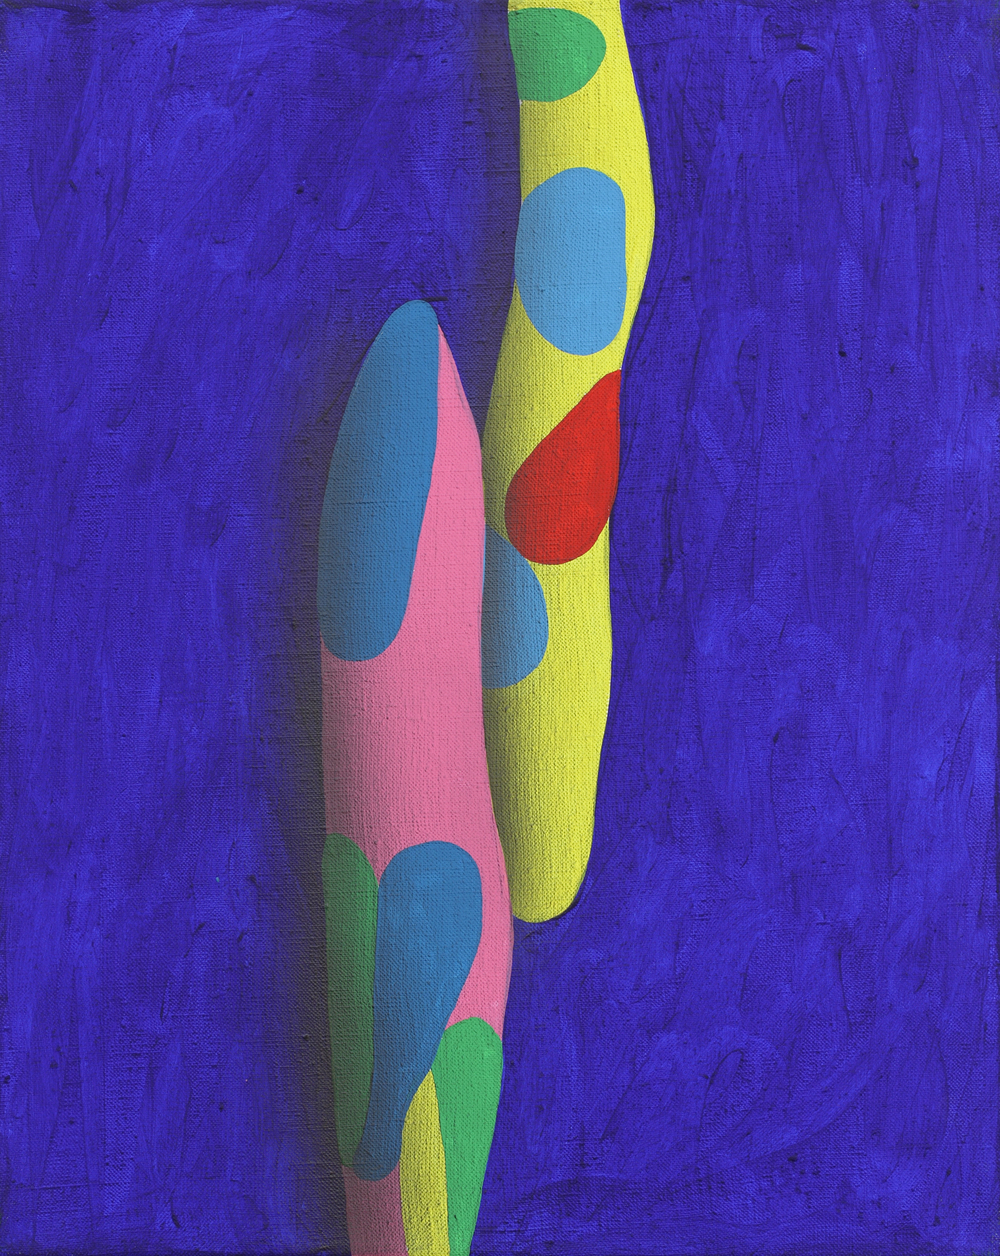 Elementary touching lines XI. 2010, acrylic on canvas, 50 x 40 cm